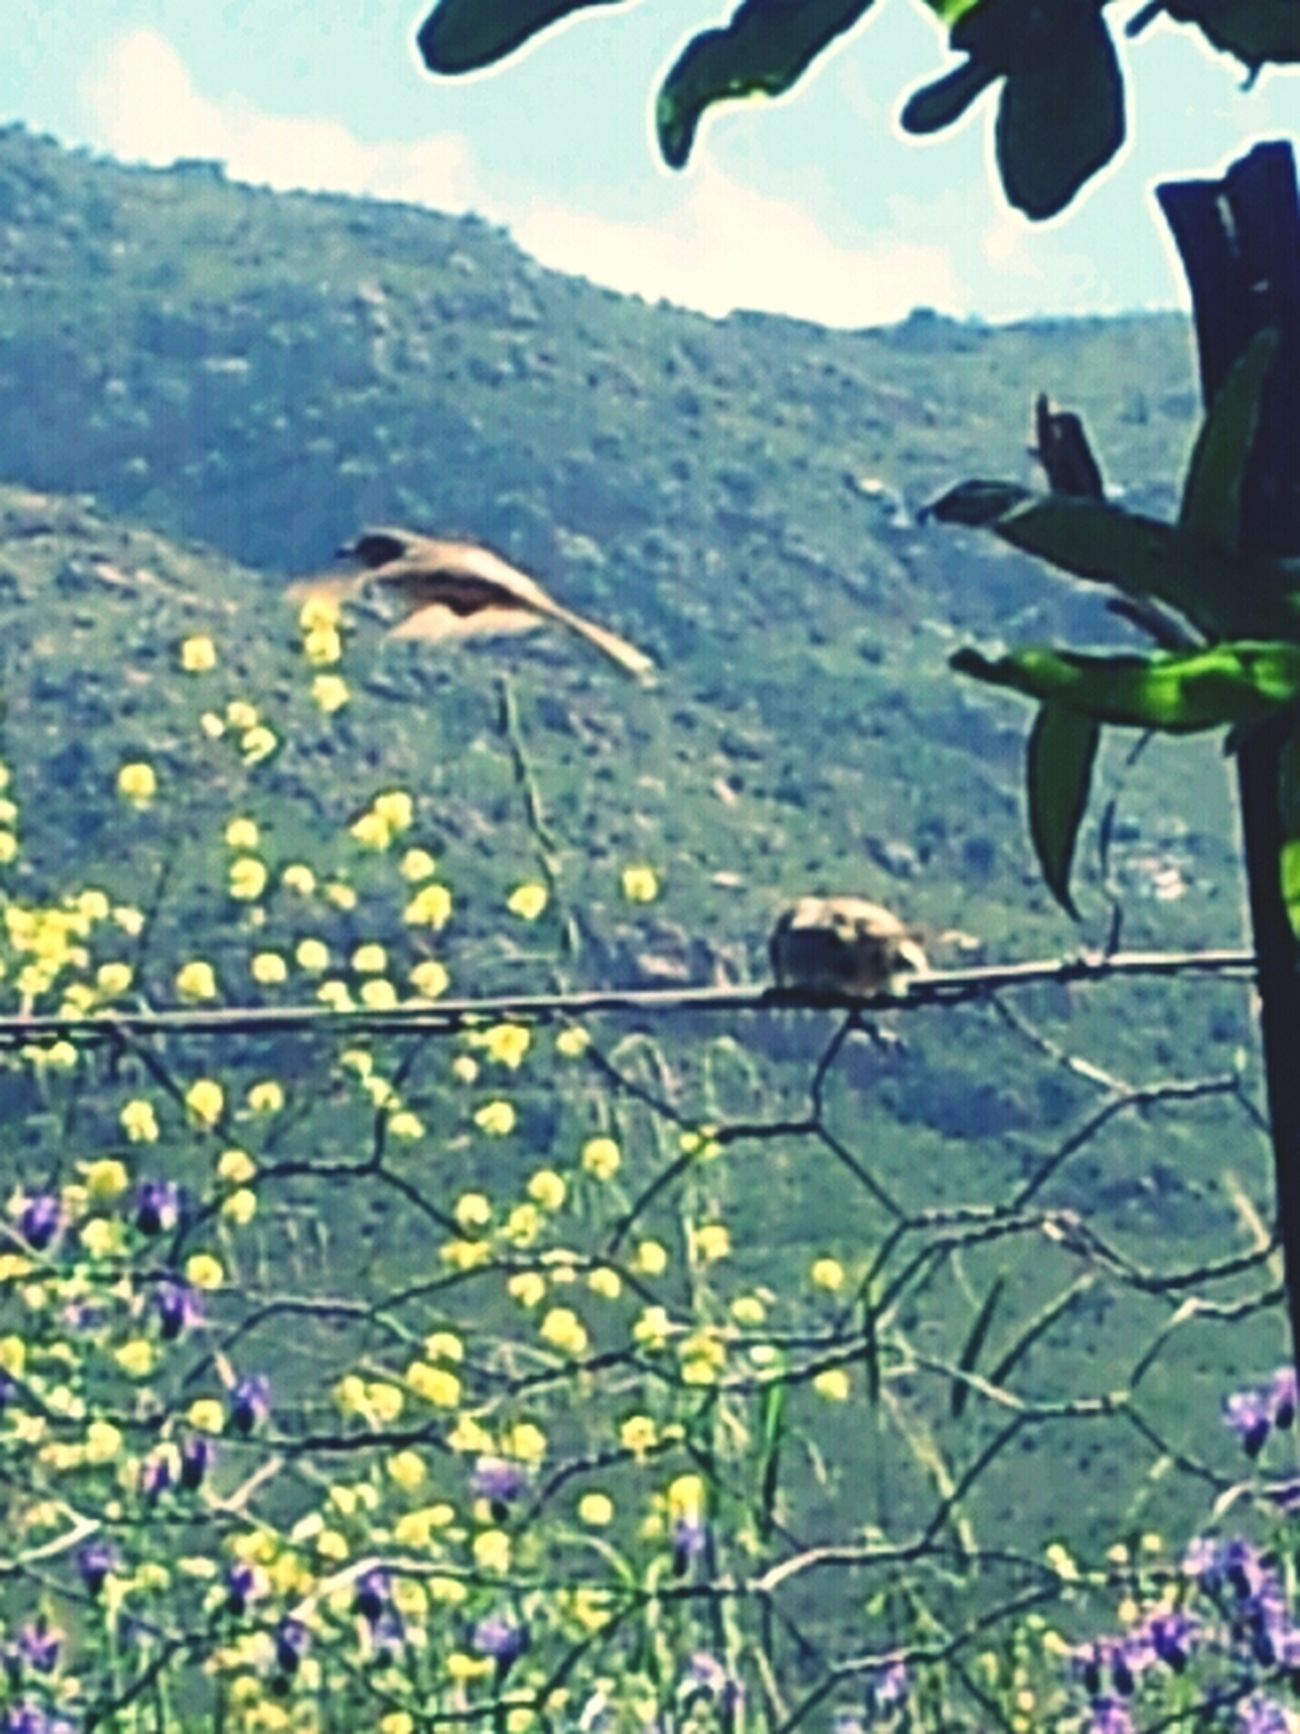 Pretentious nature pic of the day - an enlarged shot of cute li'l birdies.